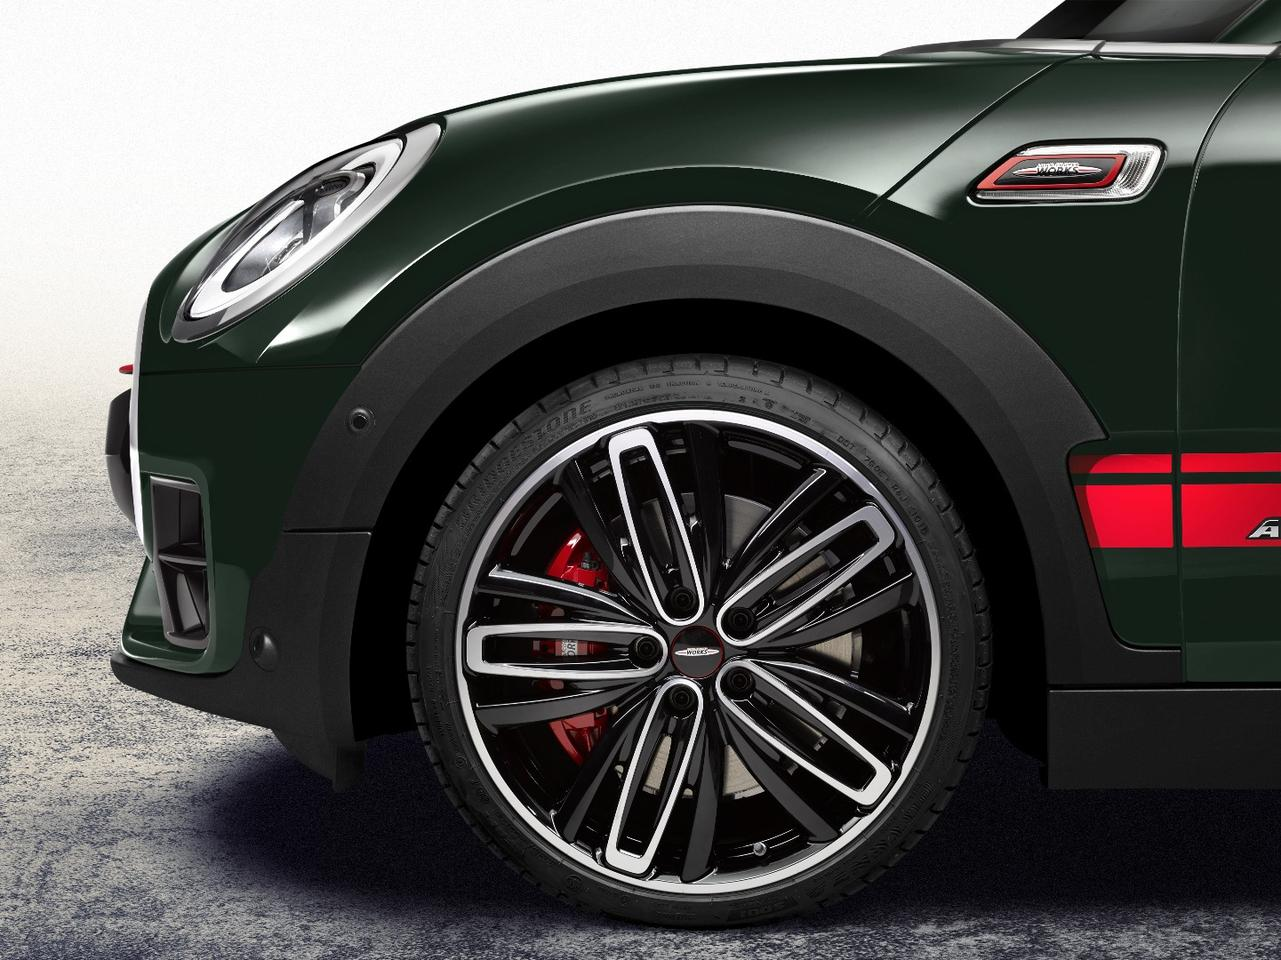 This third wheel option for the Clubman is new for this year